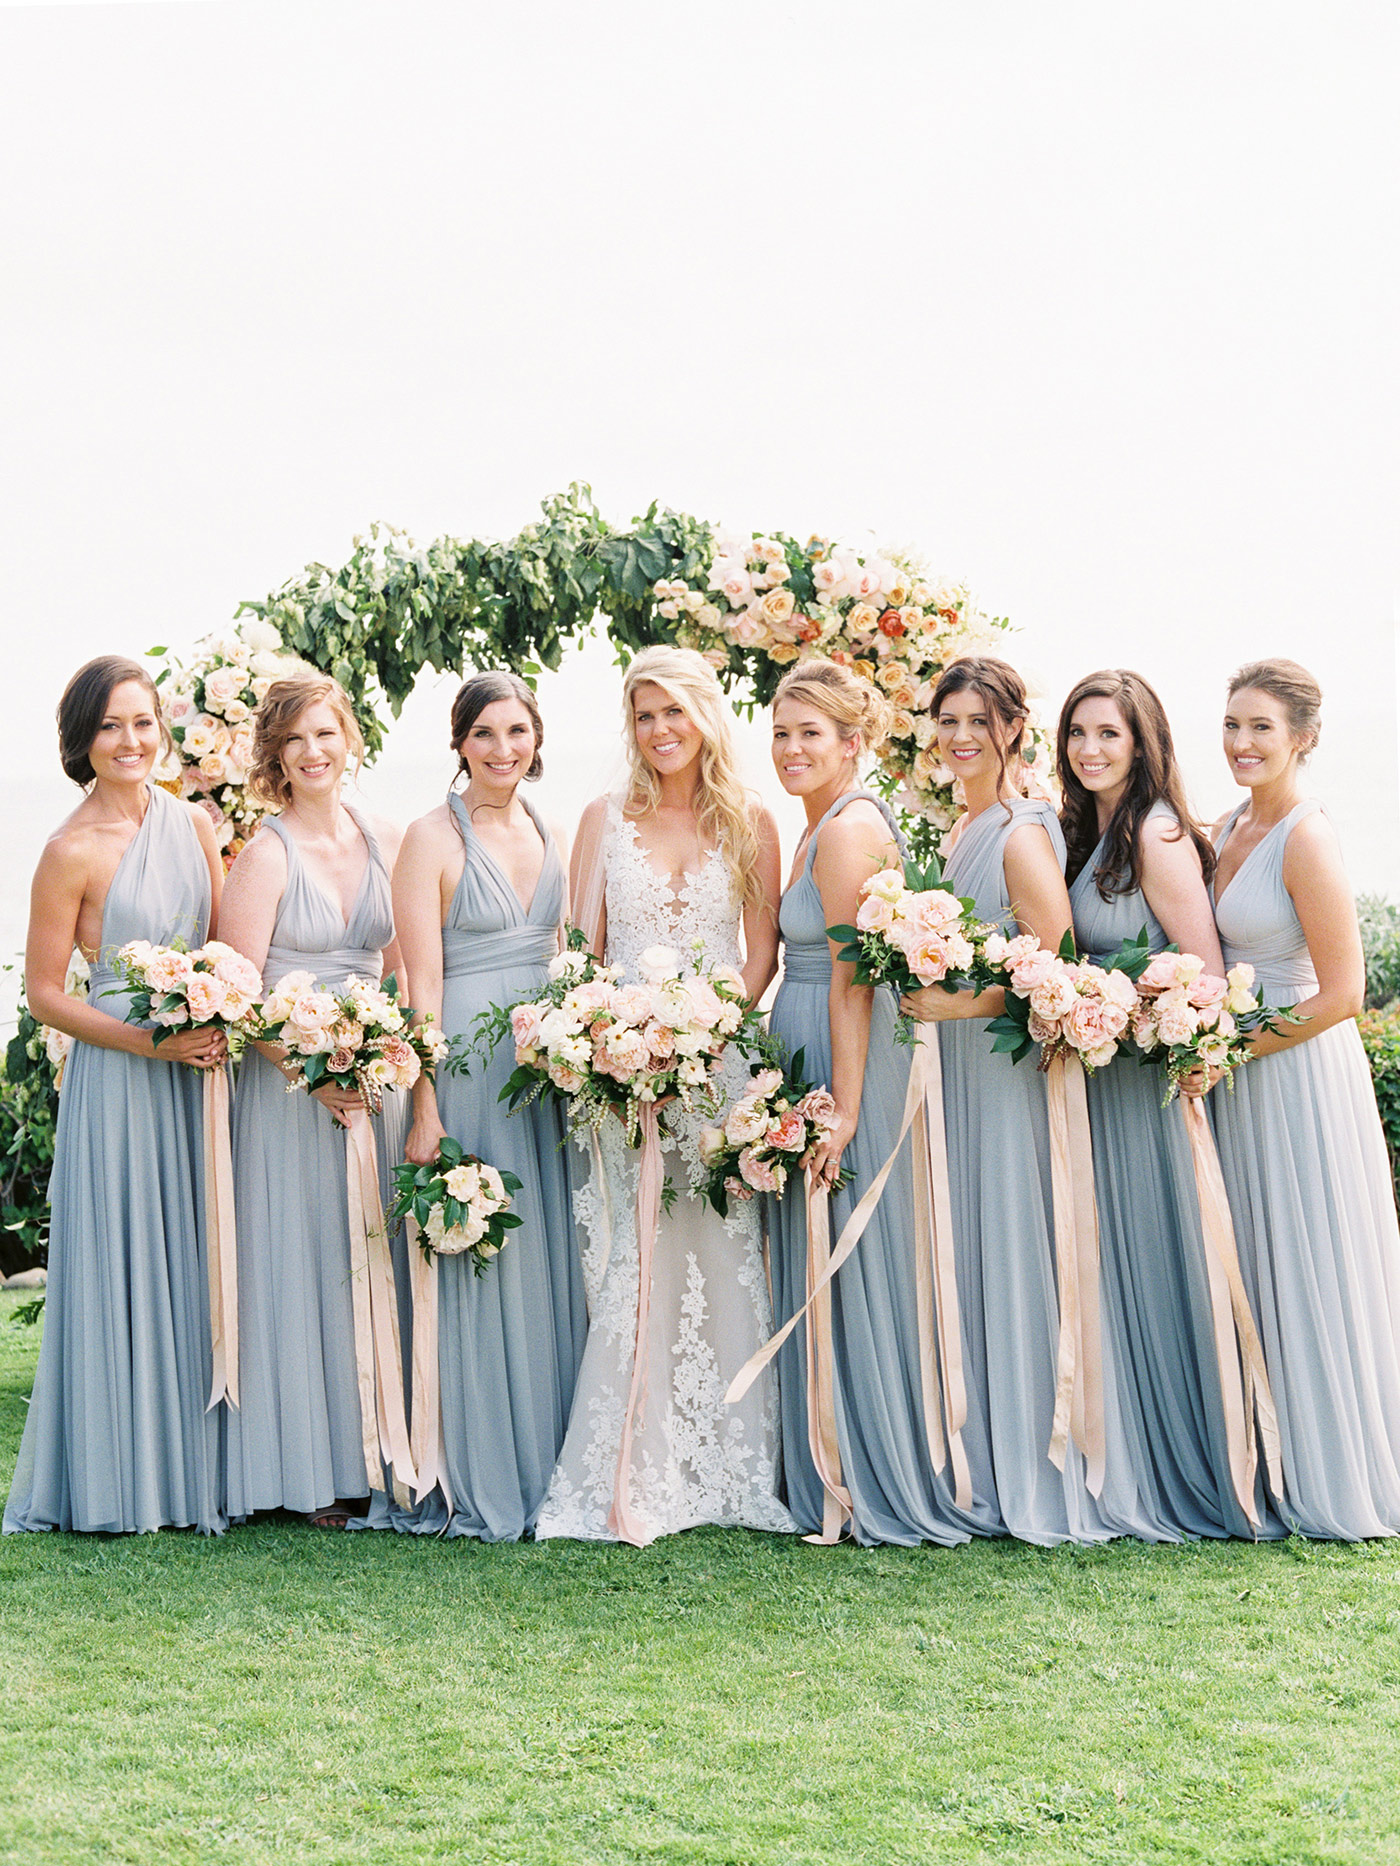 mykaela and brendon wedding bride with bridesmaids wearing dusty blue gowns